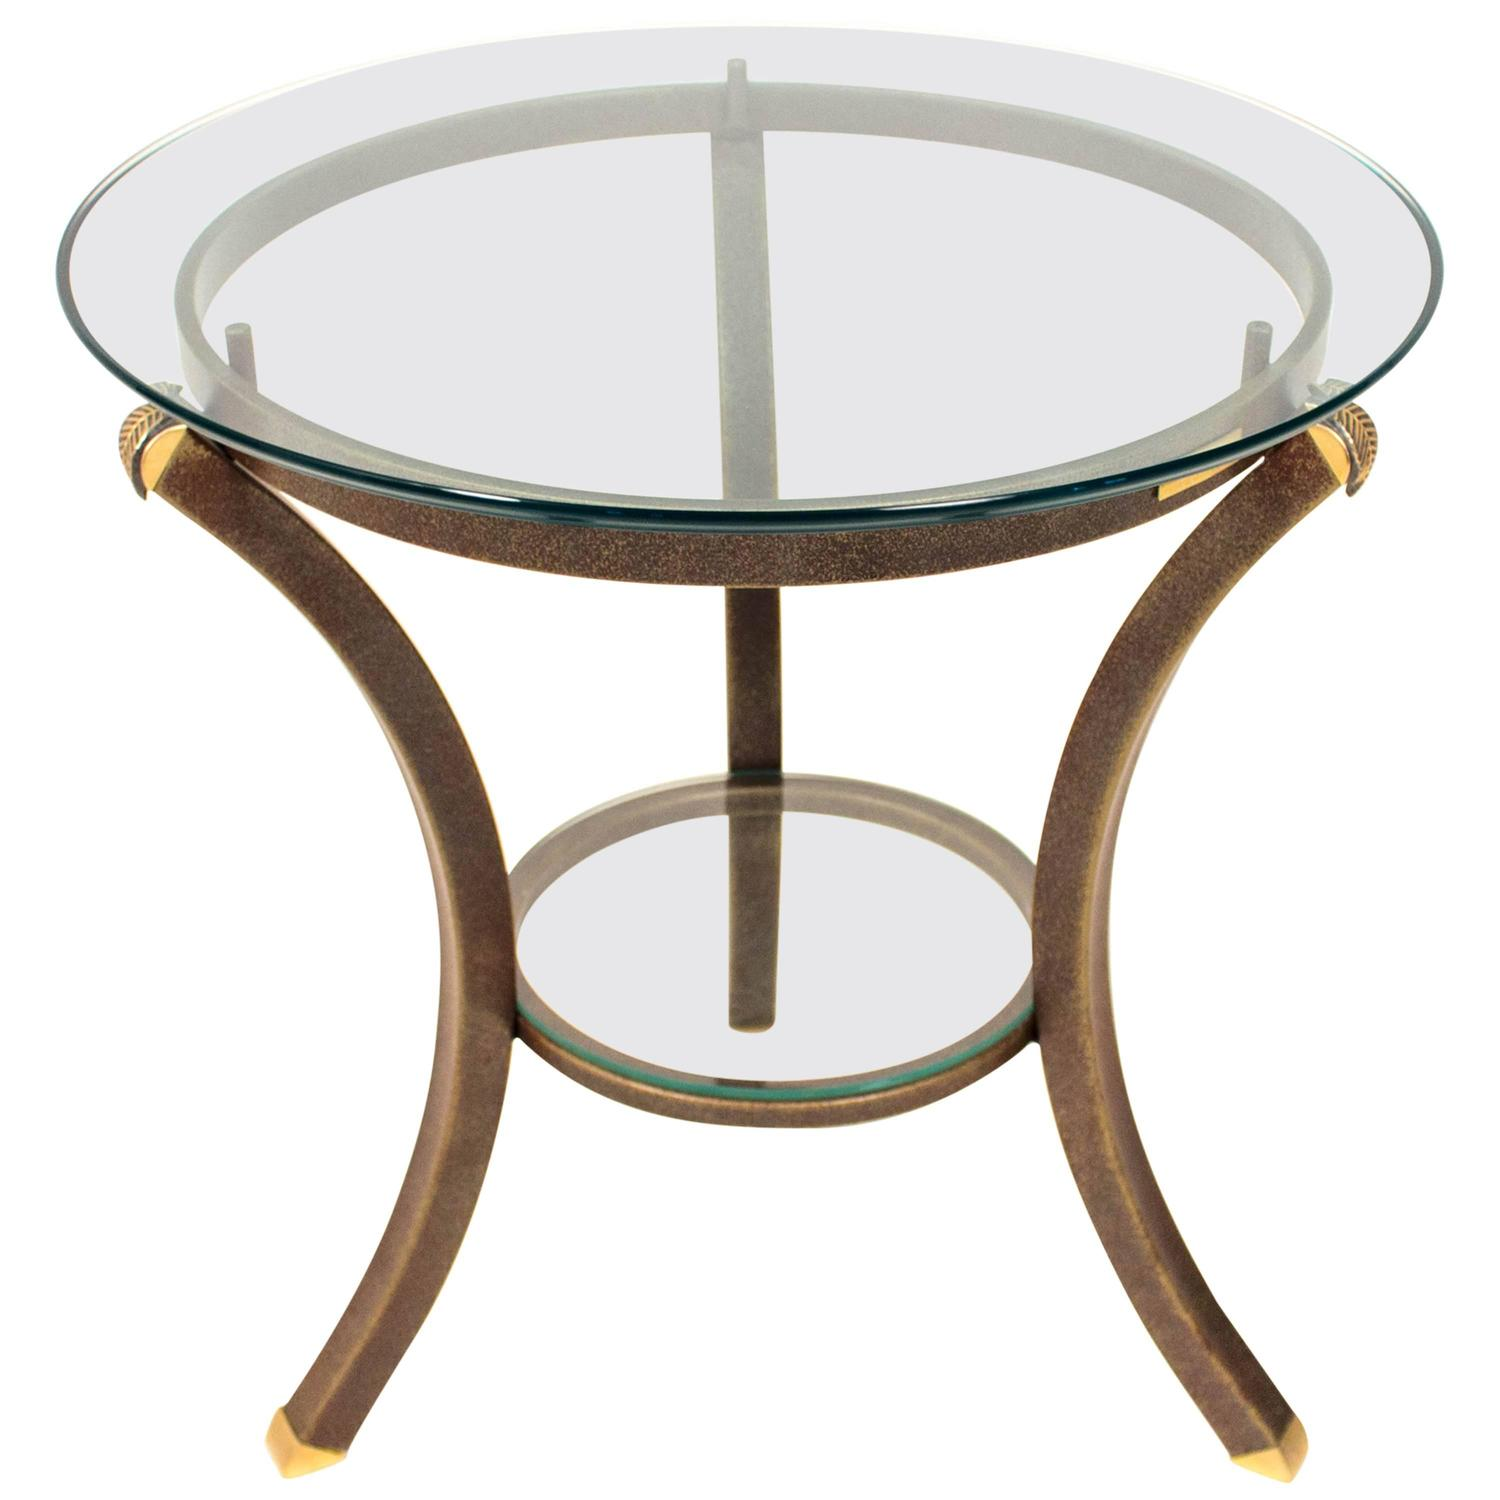 Vintage Pierre Vandel Paris Coffee Table at 1stdibs